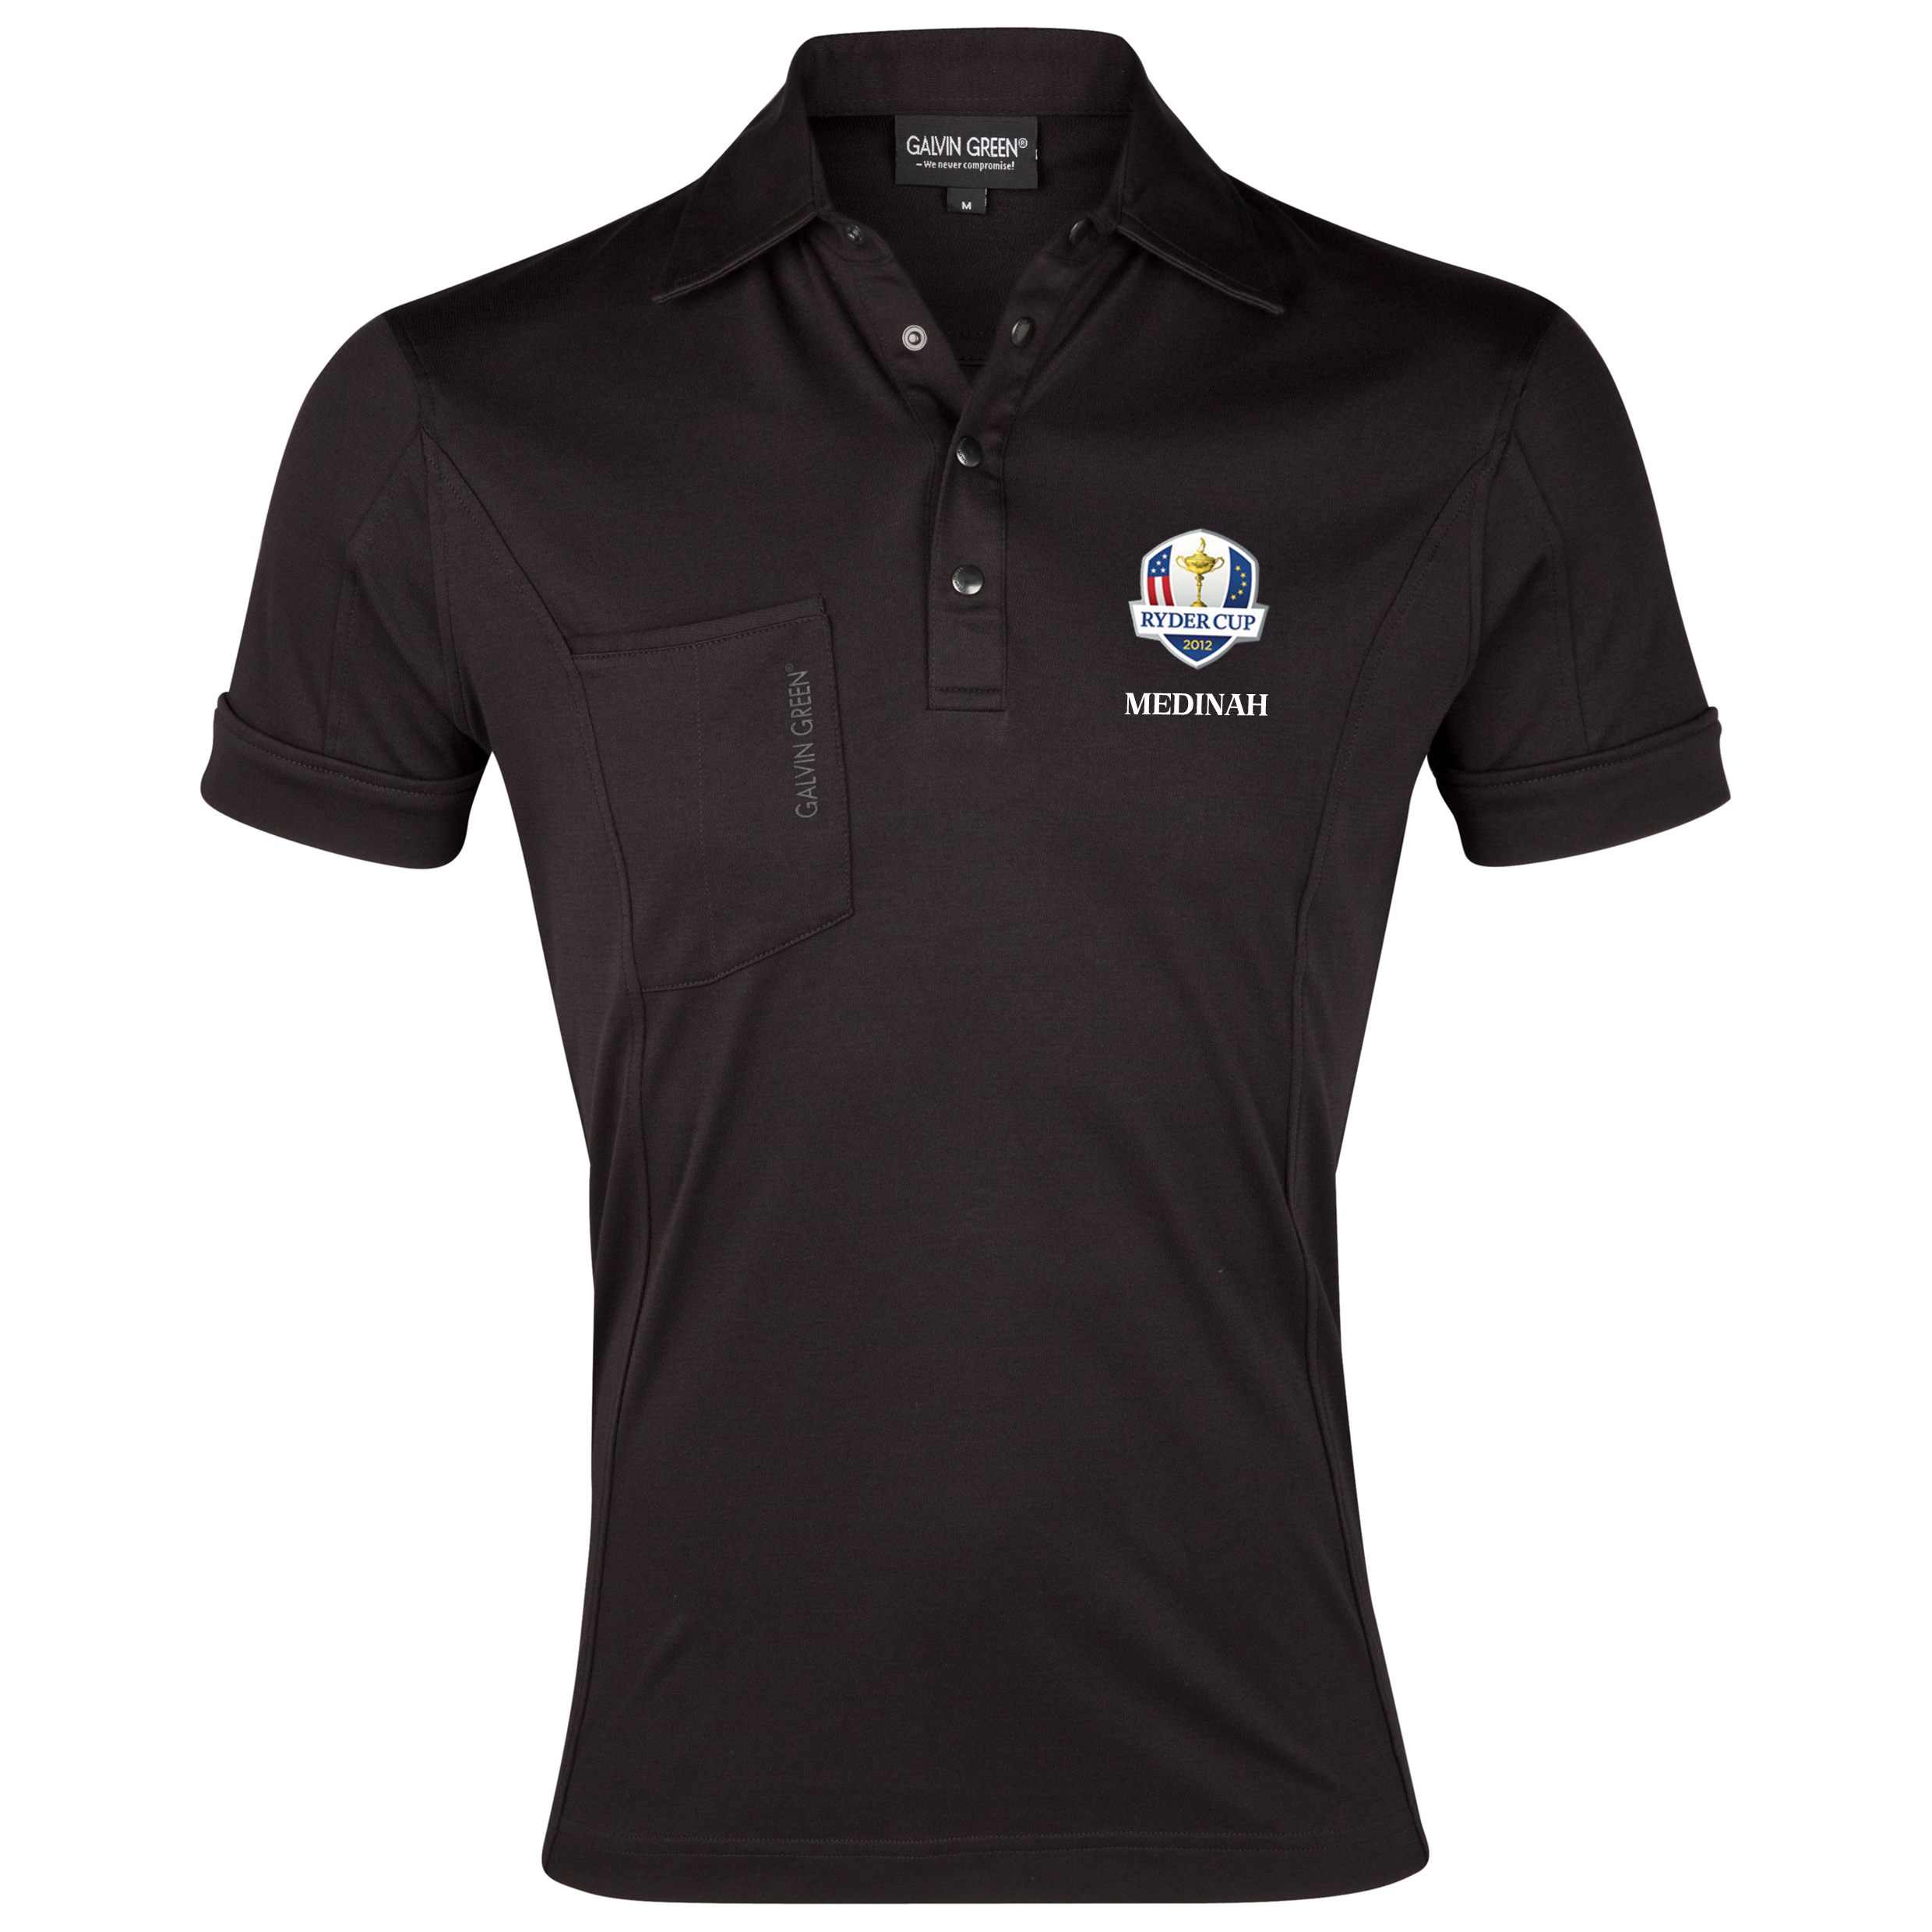 The Ryder Cup Medinah 2012 Galvin Green Golf Polo - Black